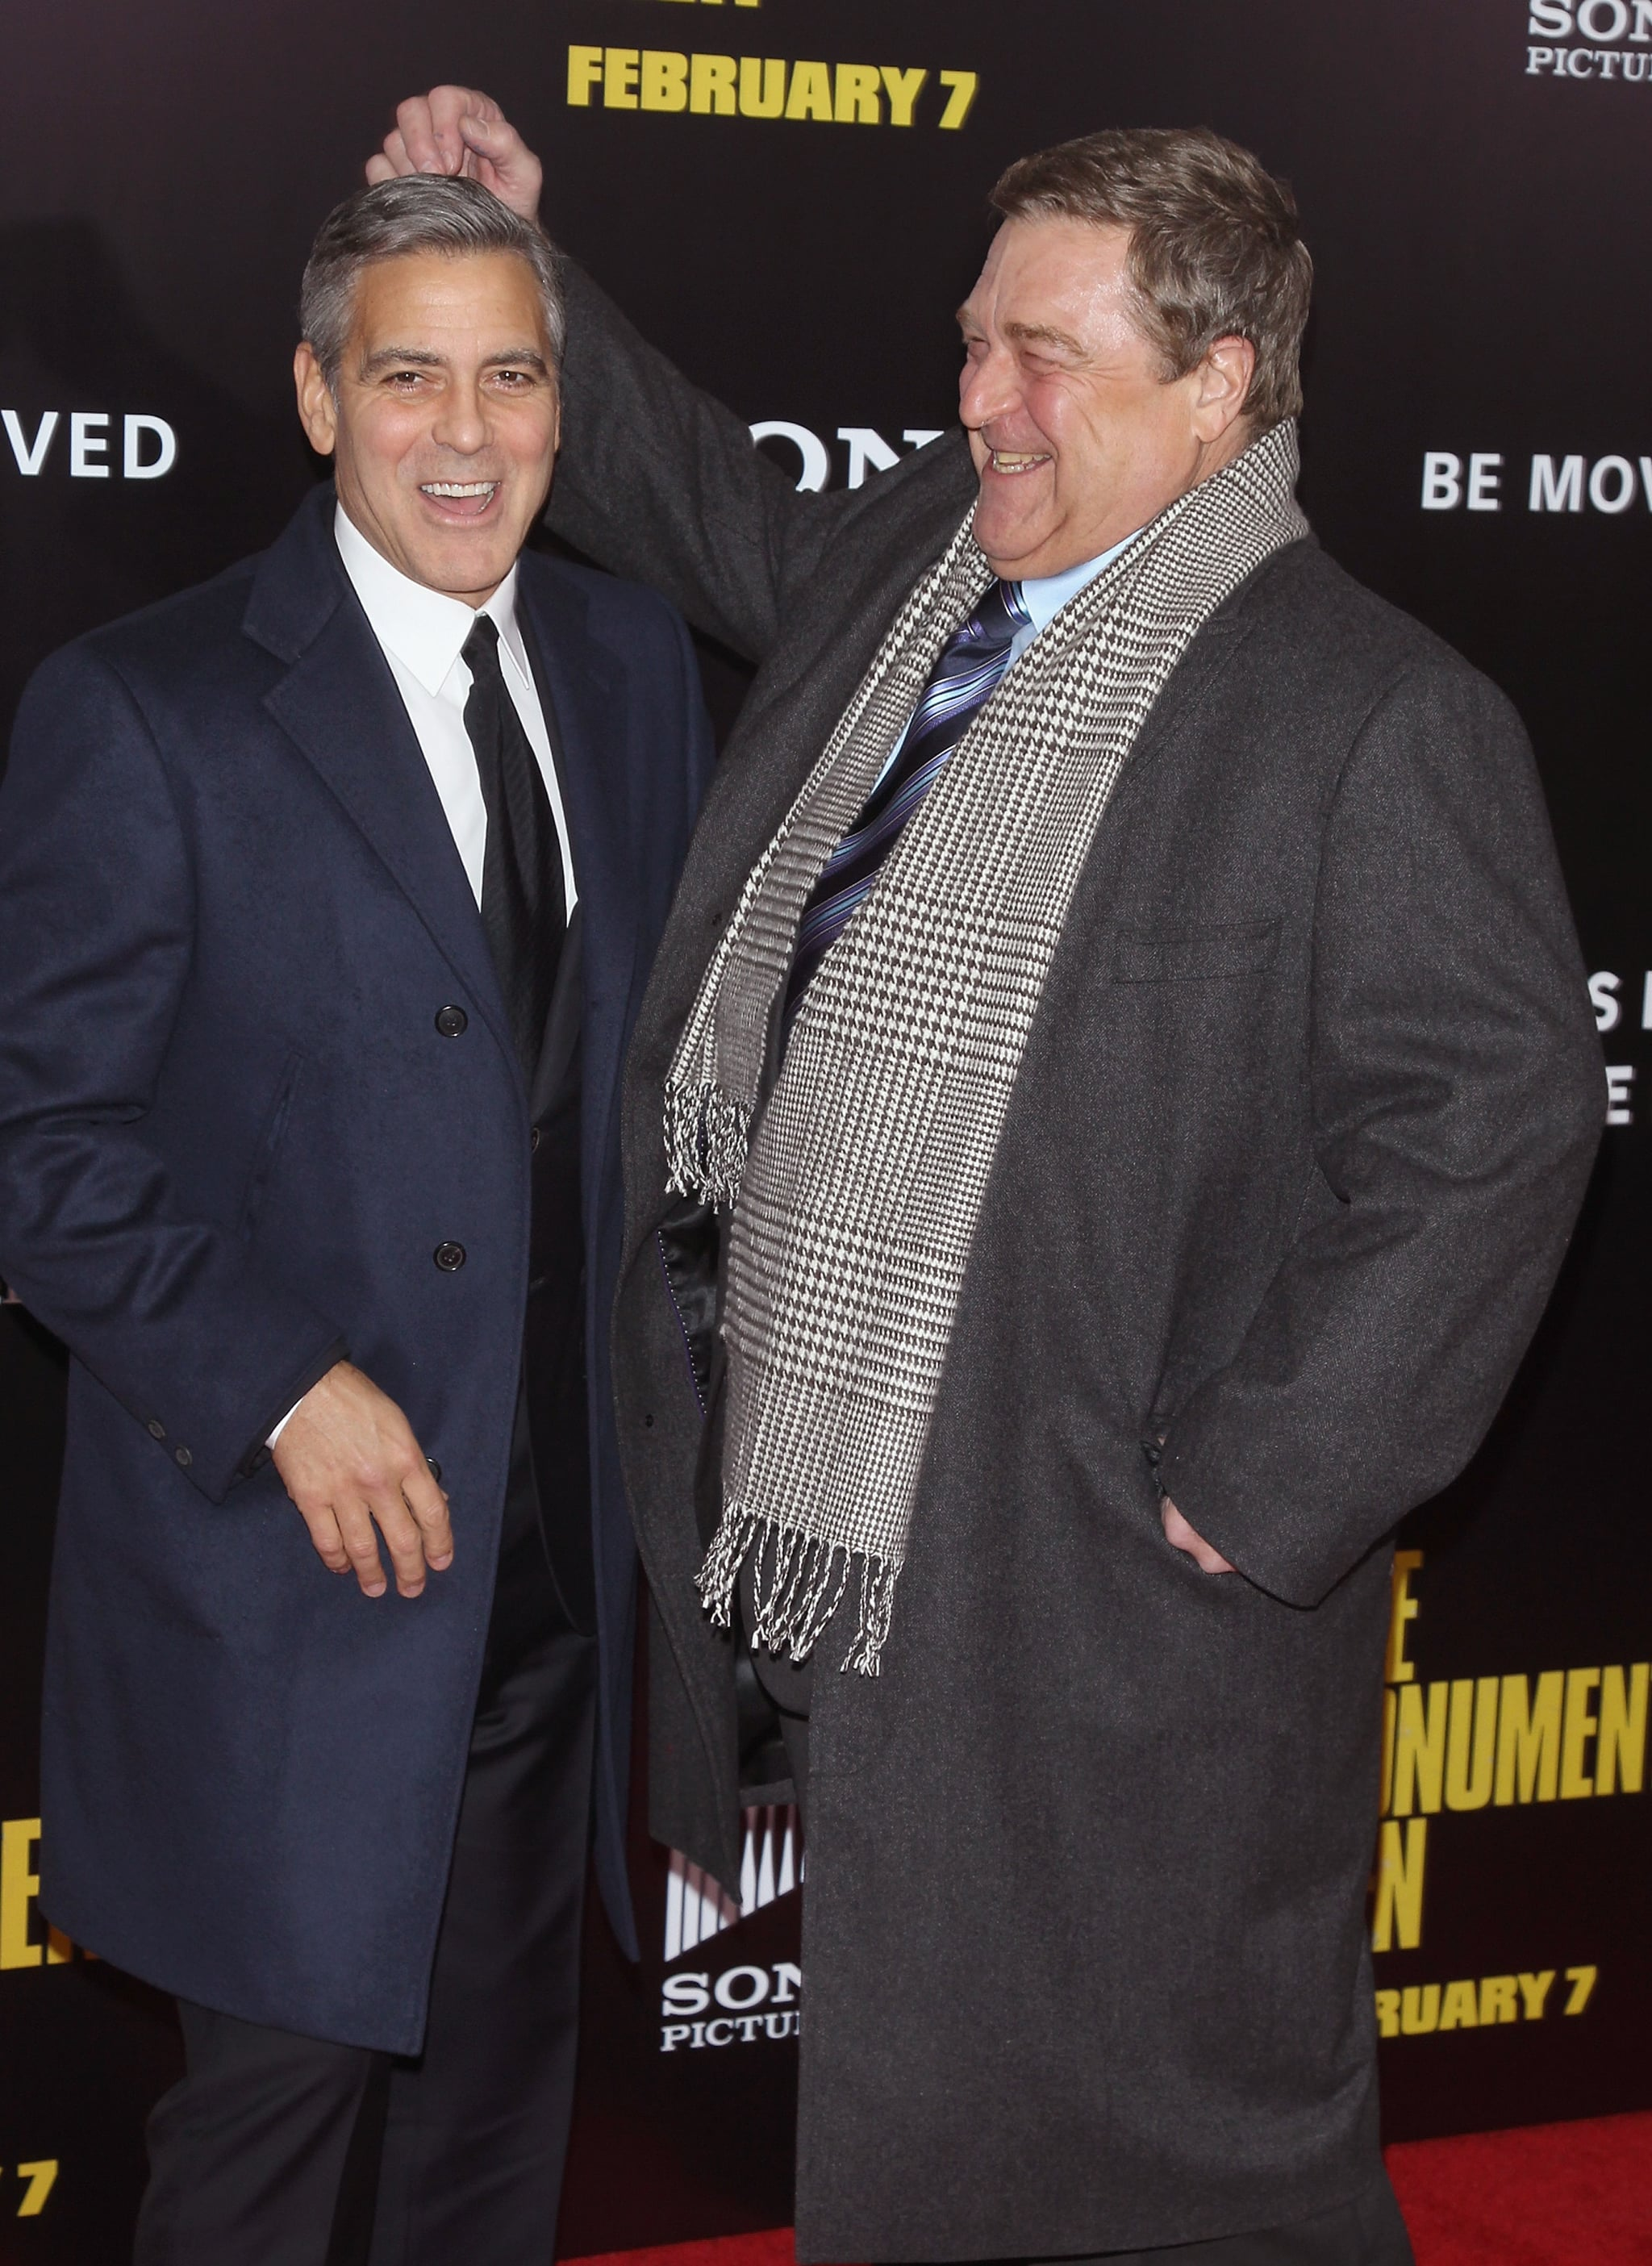 John Goodman played around with George on the carpet.